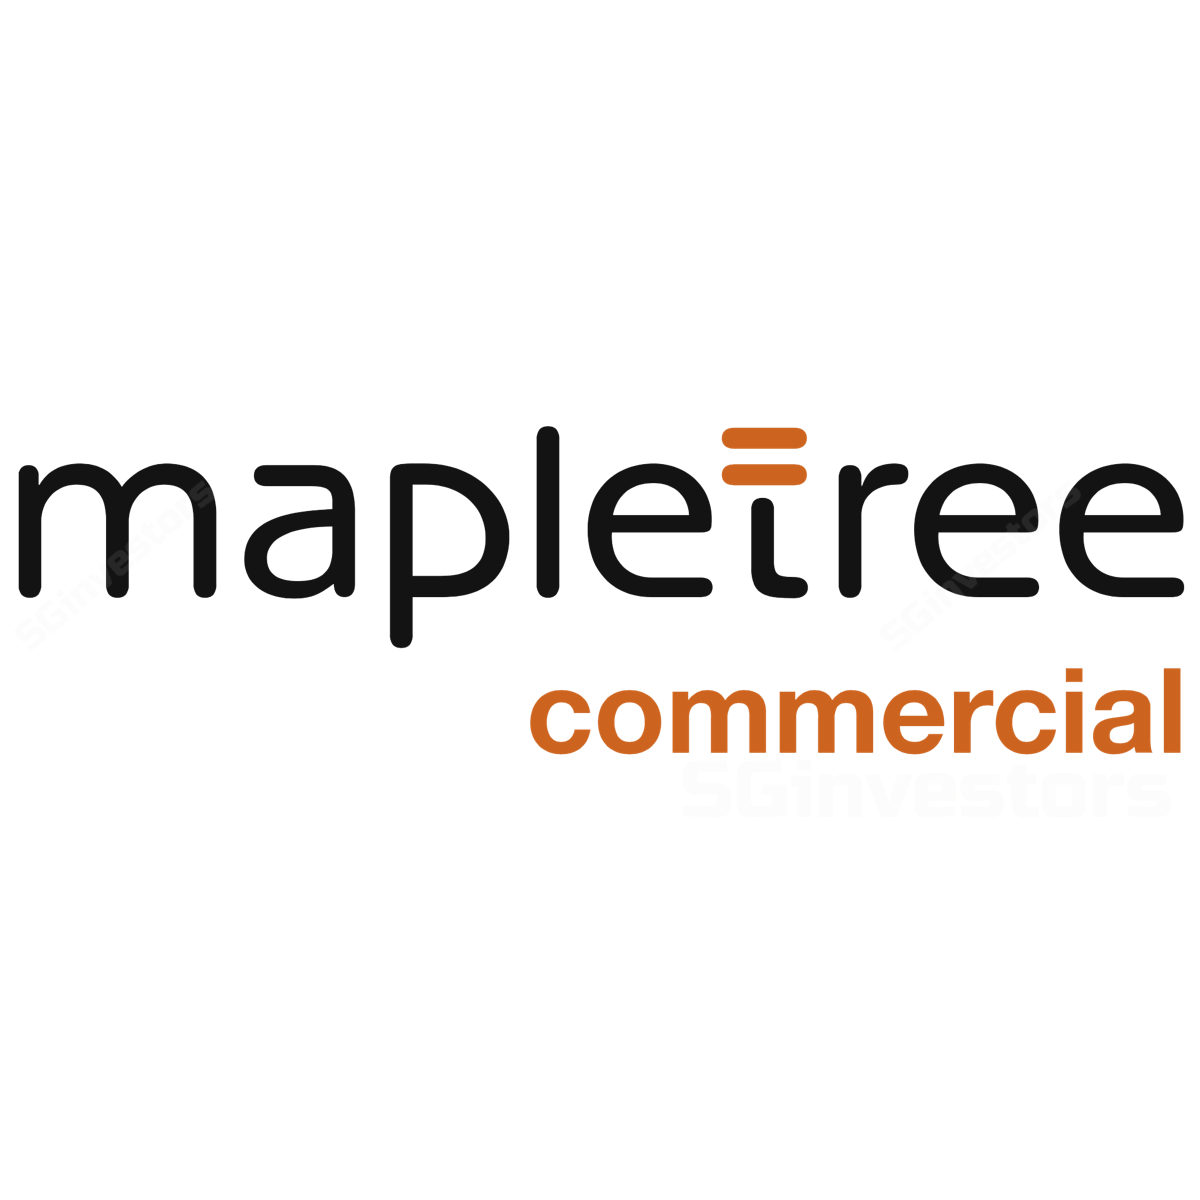 Mapletree Commercial Trust (MCT SP) - Maybank Kim Eng 2018-04-25: More Not Less; U/g To Hold